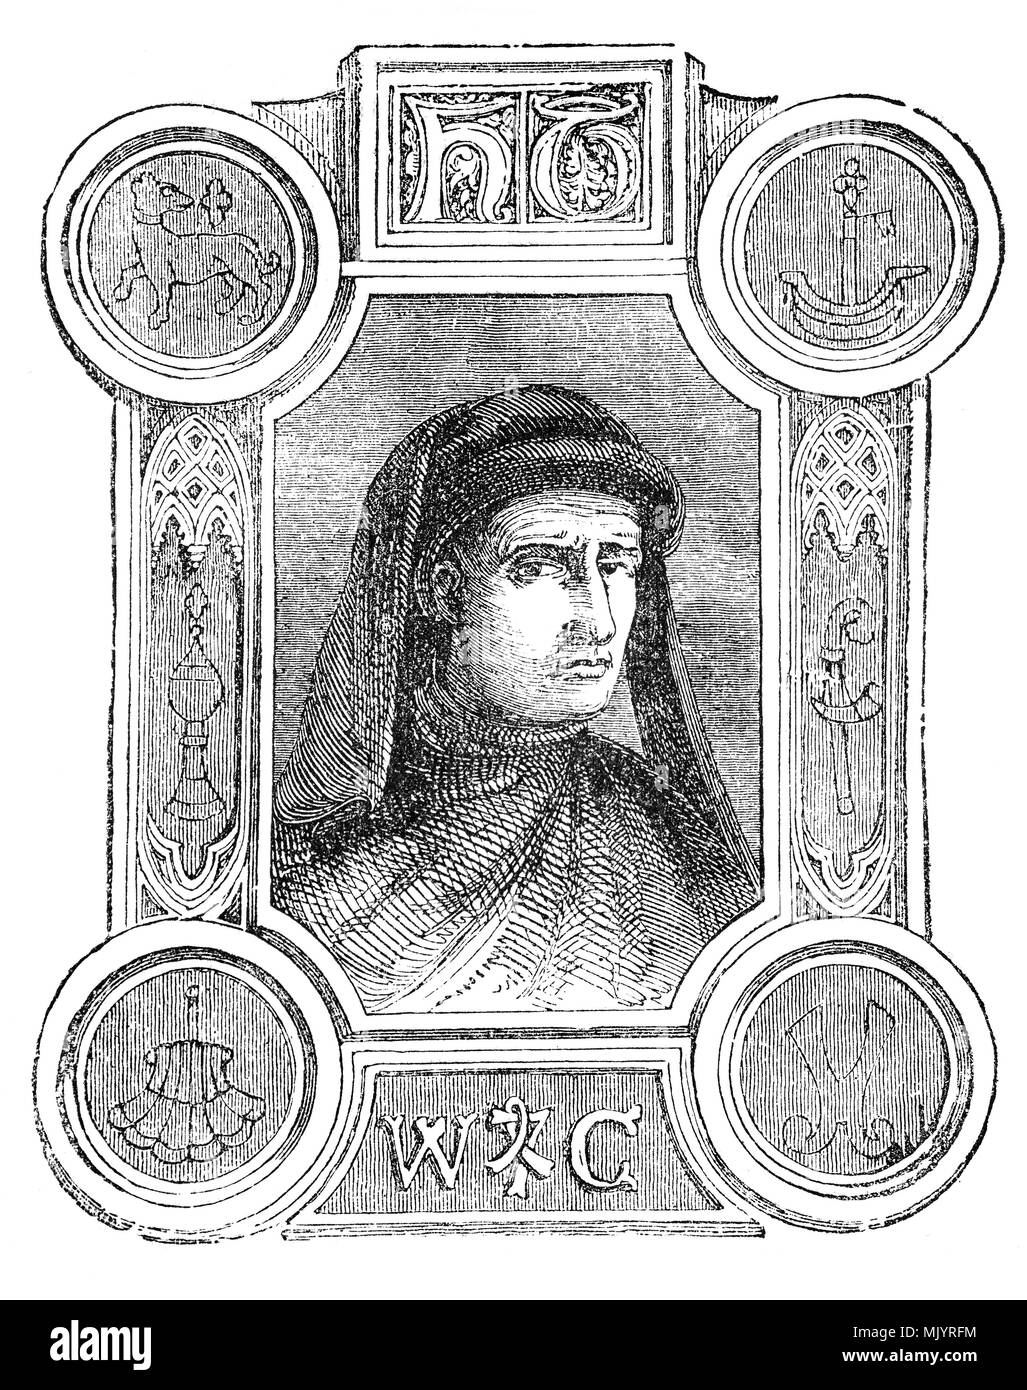 An ornate portrait of William Caxton (1412-1493) who set up the first printing press in England in 1472. He was born in Kent and after schooling spent many years in Bruges and Holland, rising to an eminent position among his fellow merchants. He went to Cologne and embraced the new technique of printing and acquired a press in order to publish his translations of various French books. Bringing his press to England he rented premises at the sign of the Red Pale in Westminster. Between 1473 and his death in 1492, he published a hundred books. - Stock Image